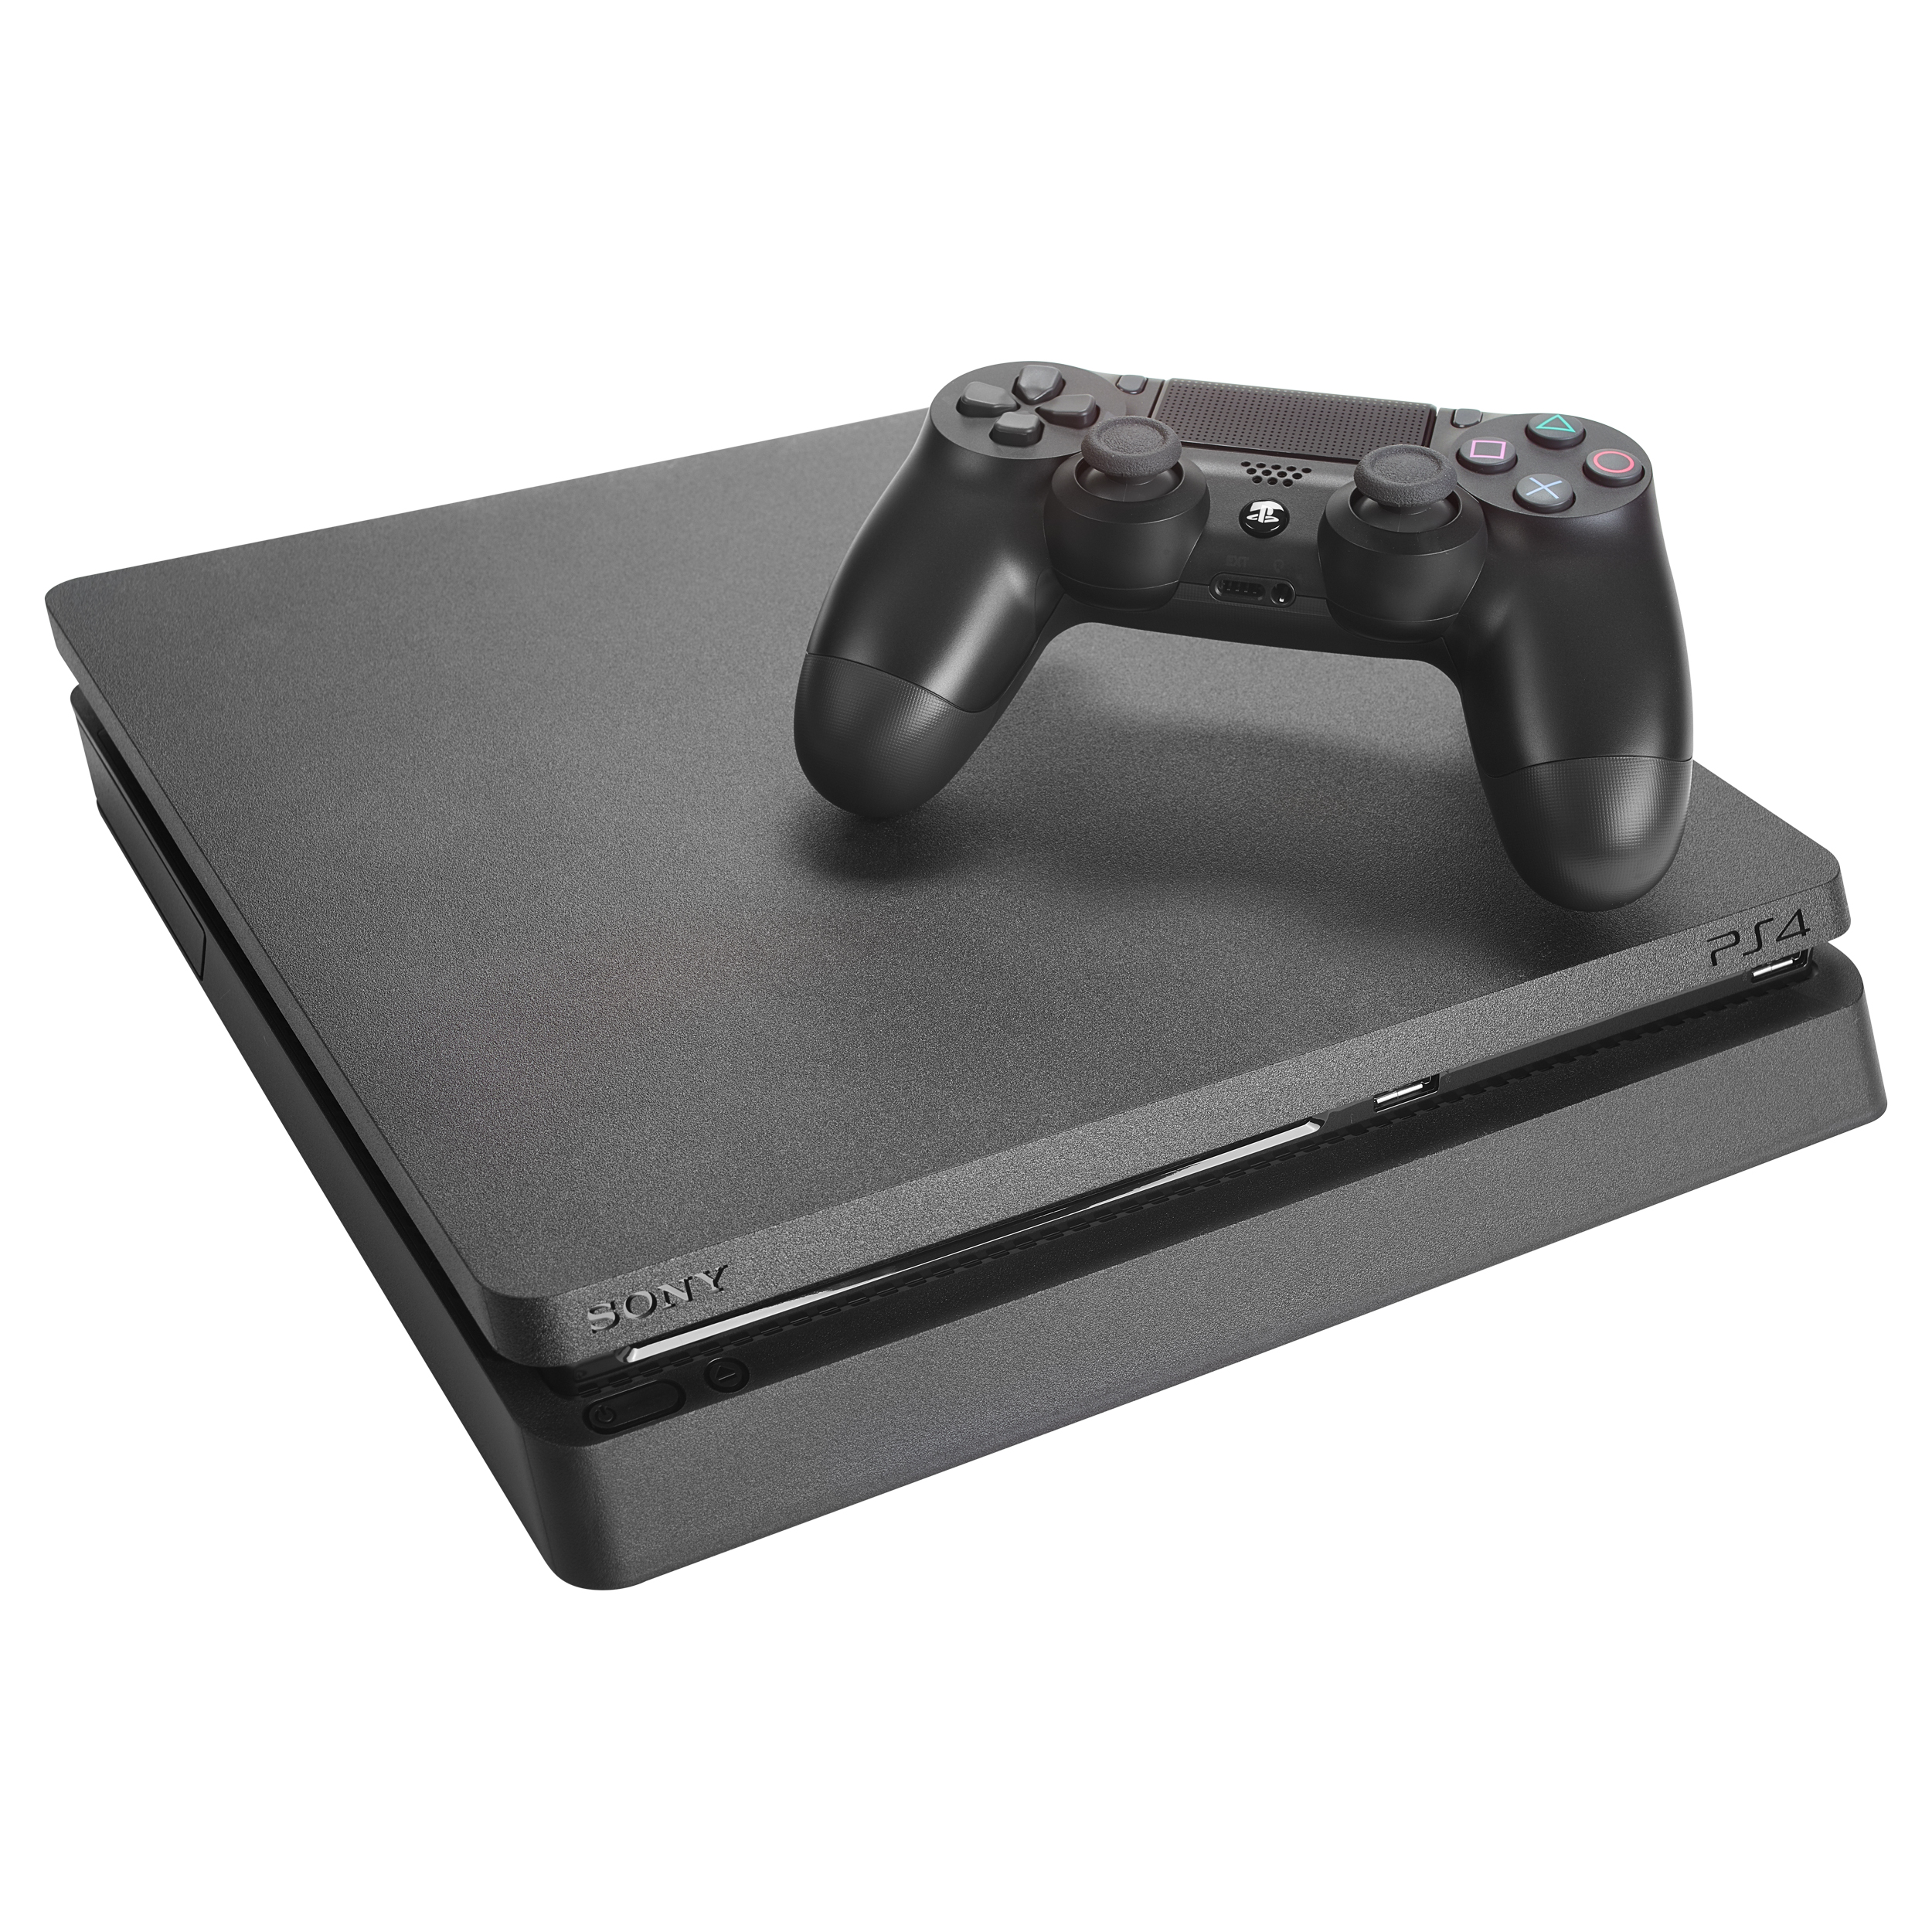 Play Station 4 Console  - Full HD 1080p - Ethernet and Wi-Fi connectivity options - 1 TB of internal storage